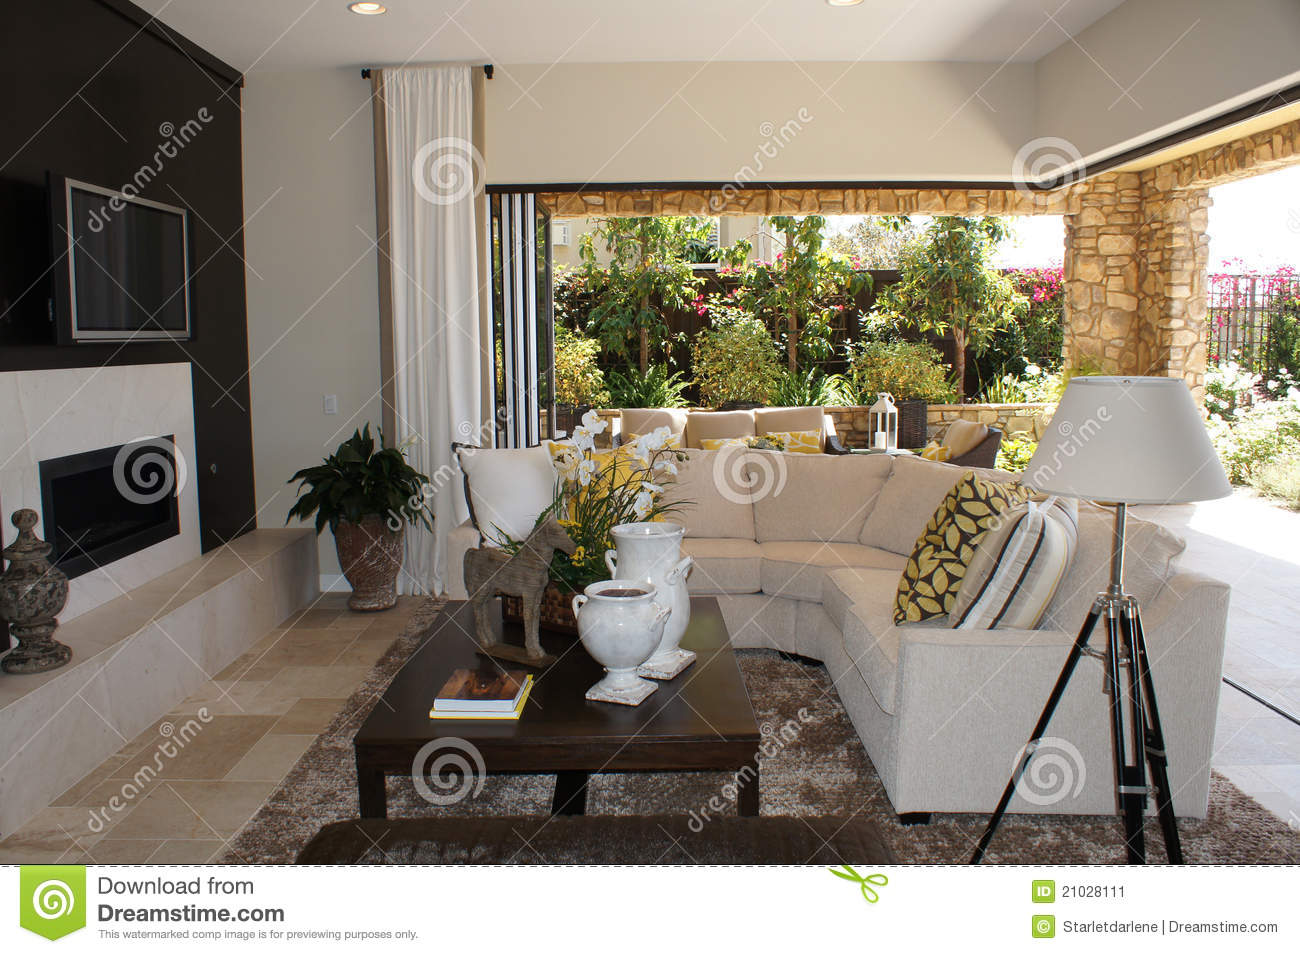 Family Room With Outdoor Livingroom Stock Image - Image